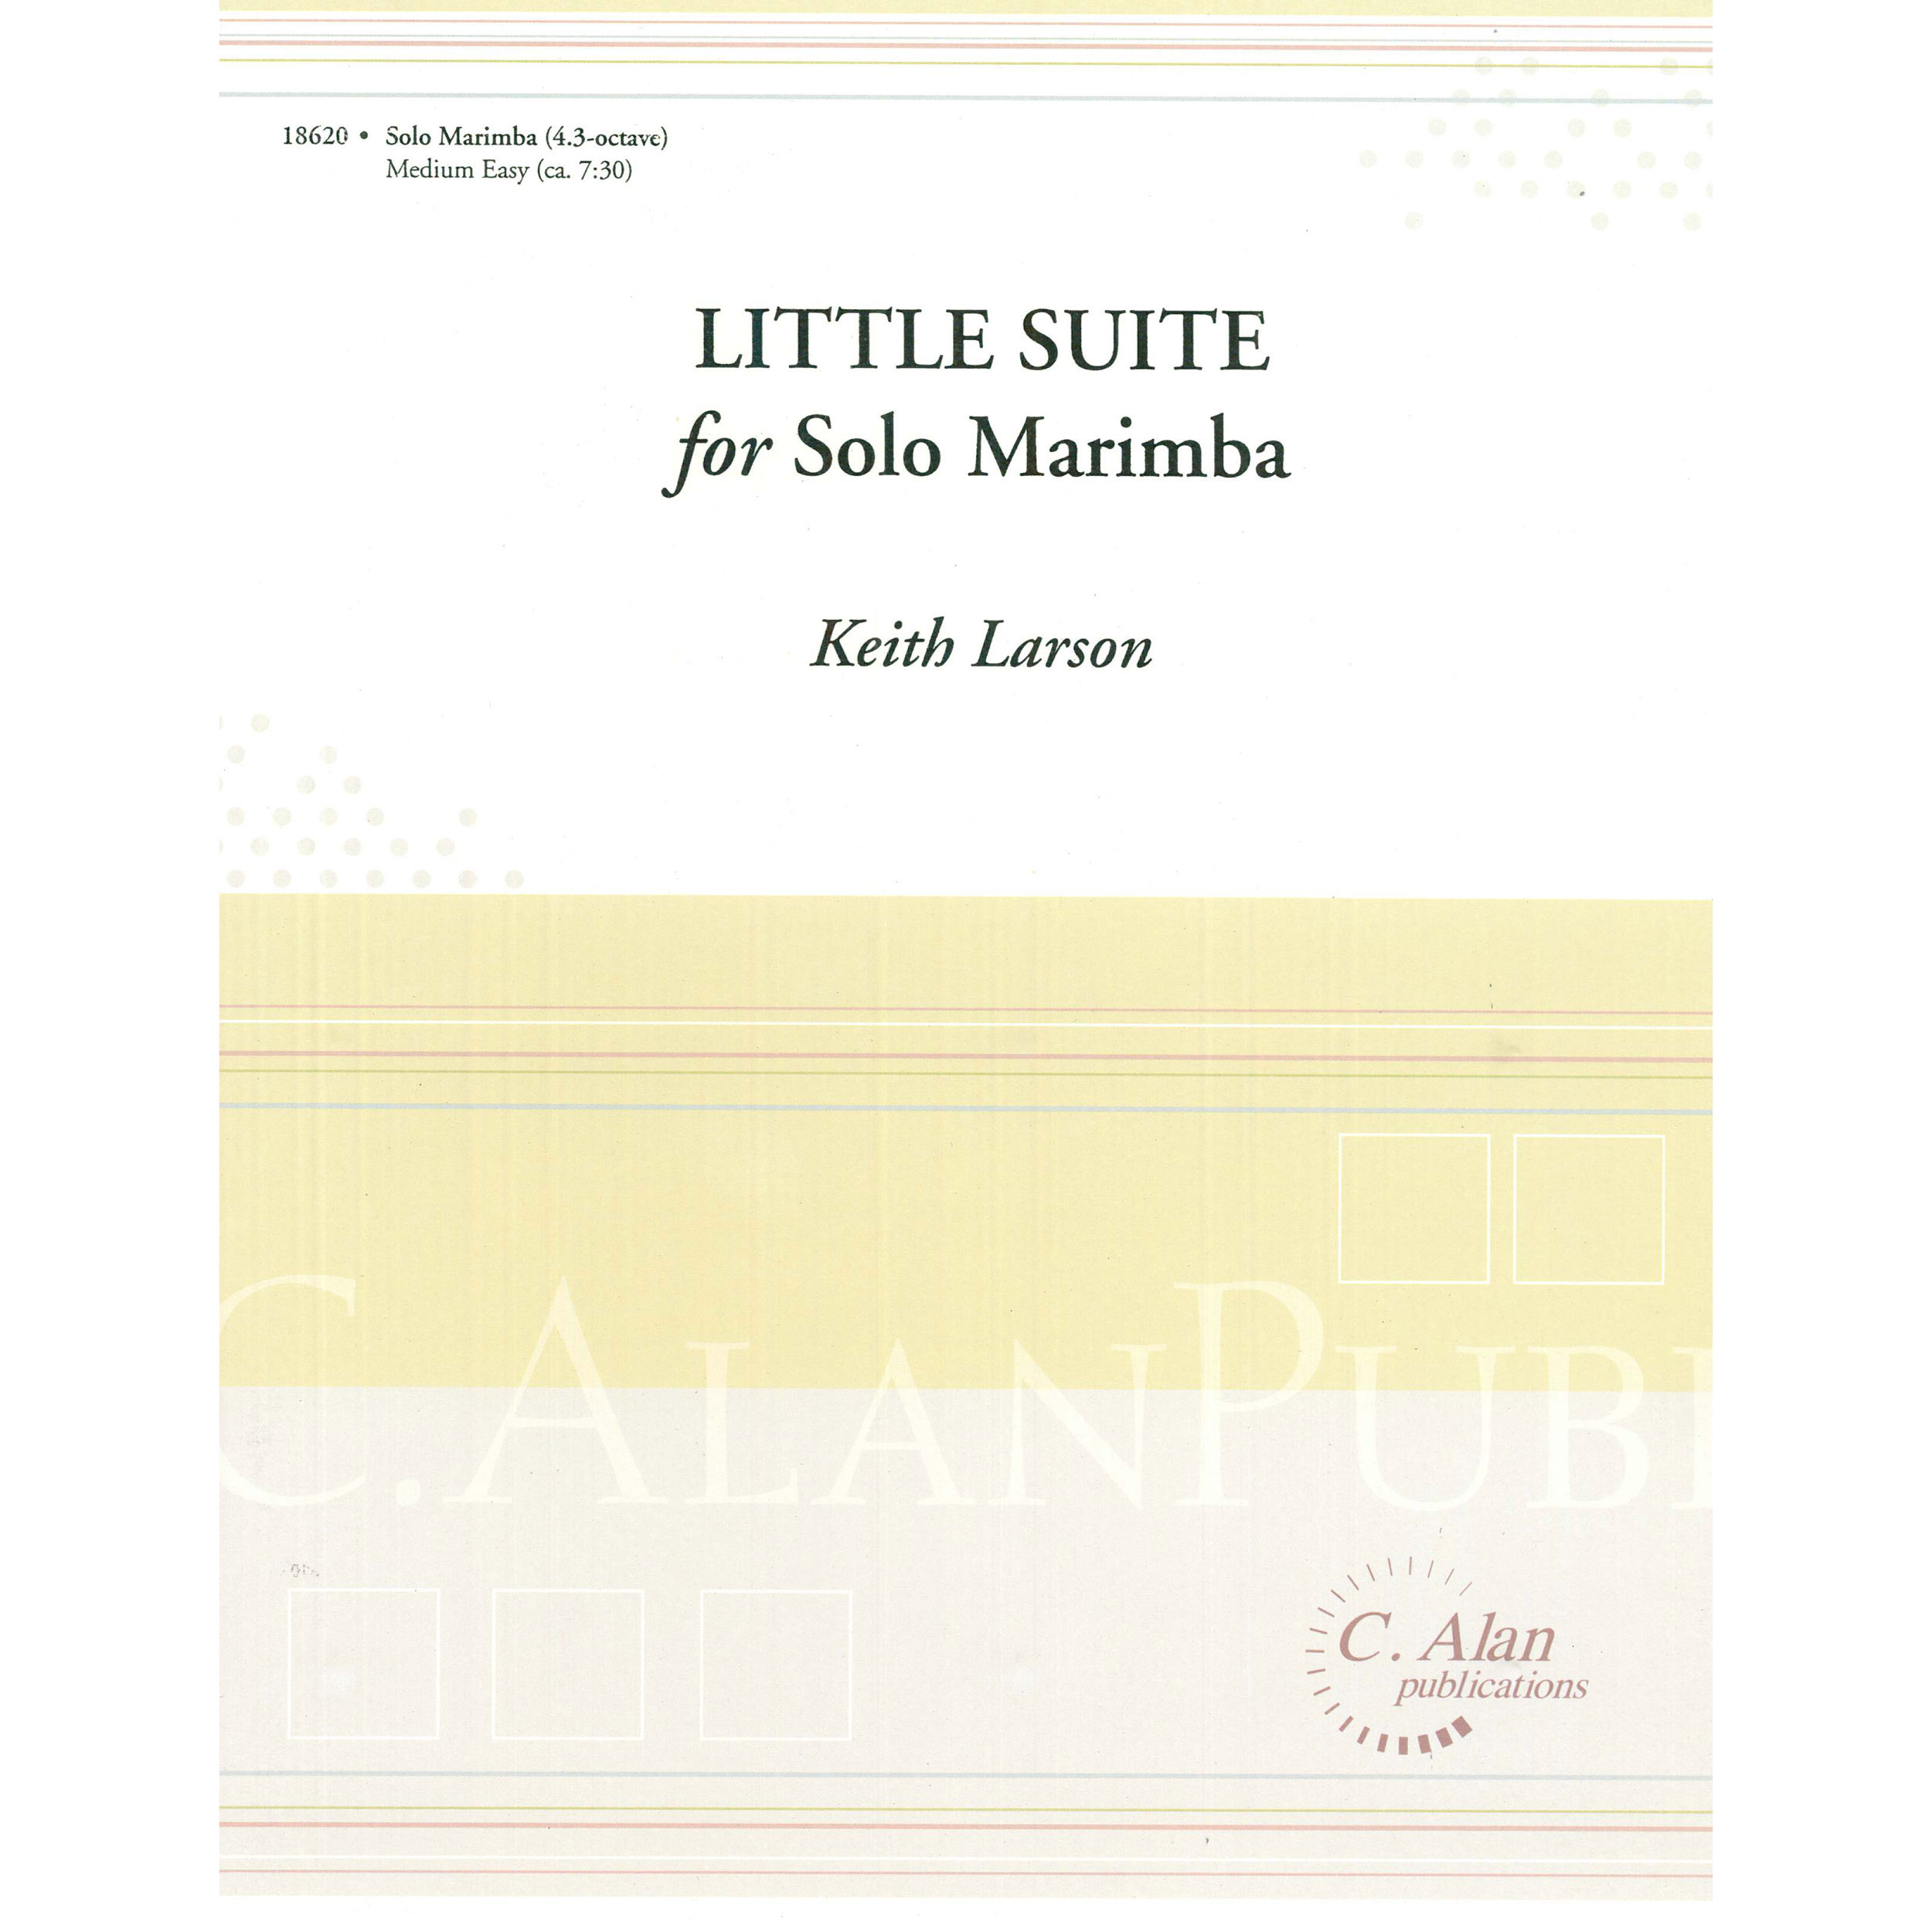 Little Suite for Solo Marimba by Keith Larson